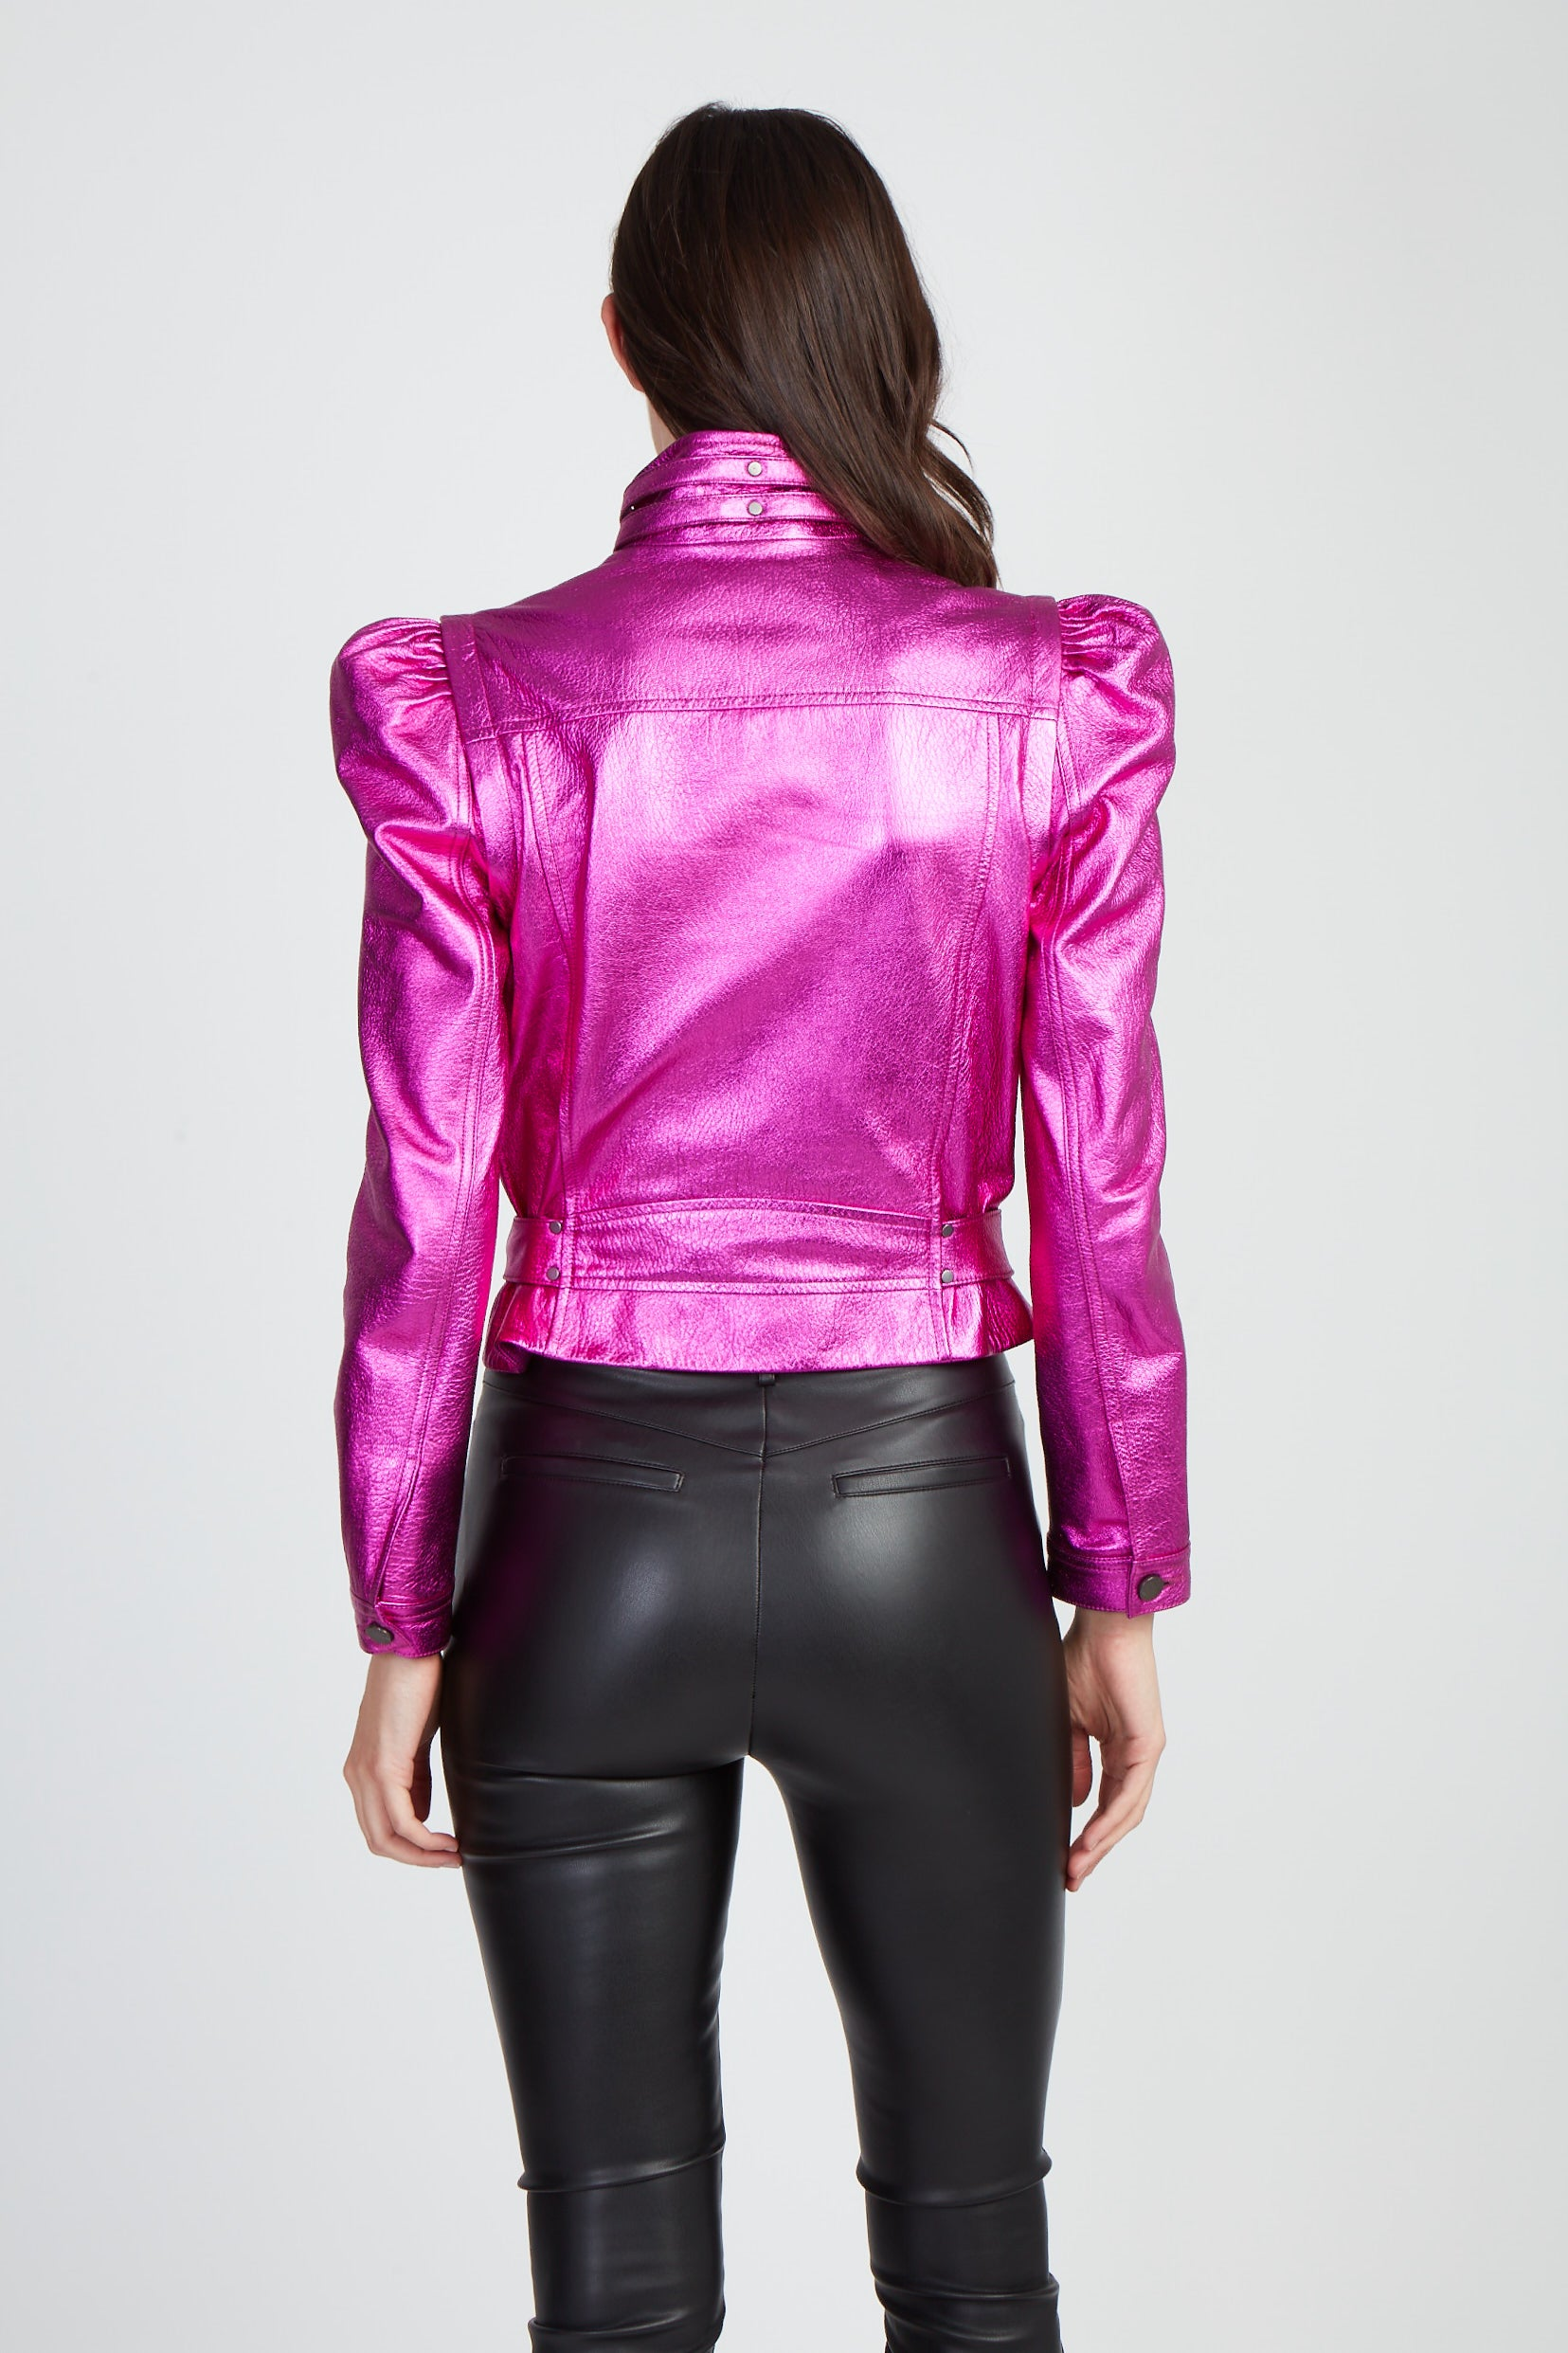 The Take Me Or Leave Me Leather Jacket